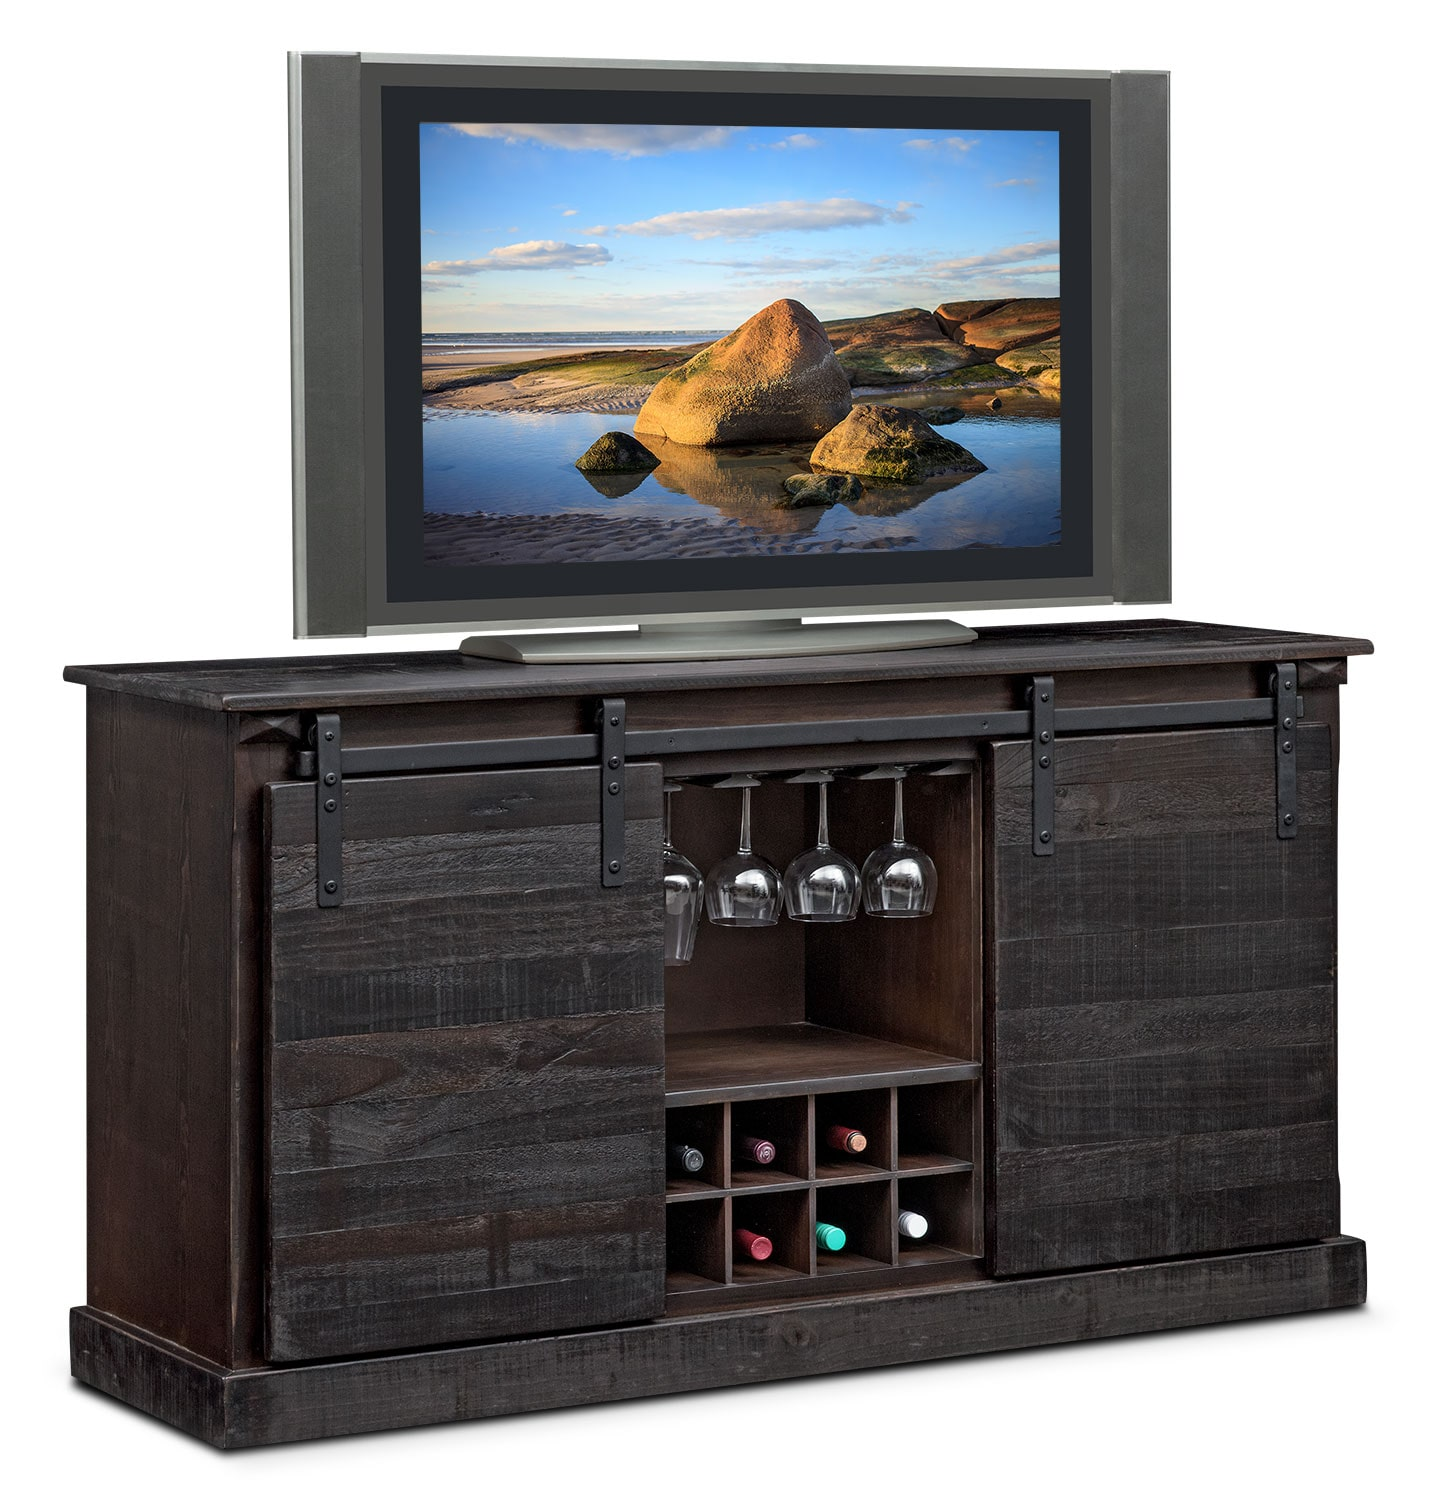 Accent And Occasional Furniture   Ashcroft Media Credenza With Wine Storage    Charcoal